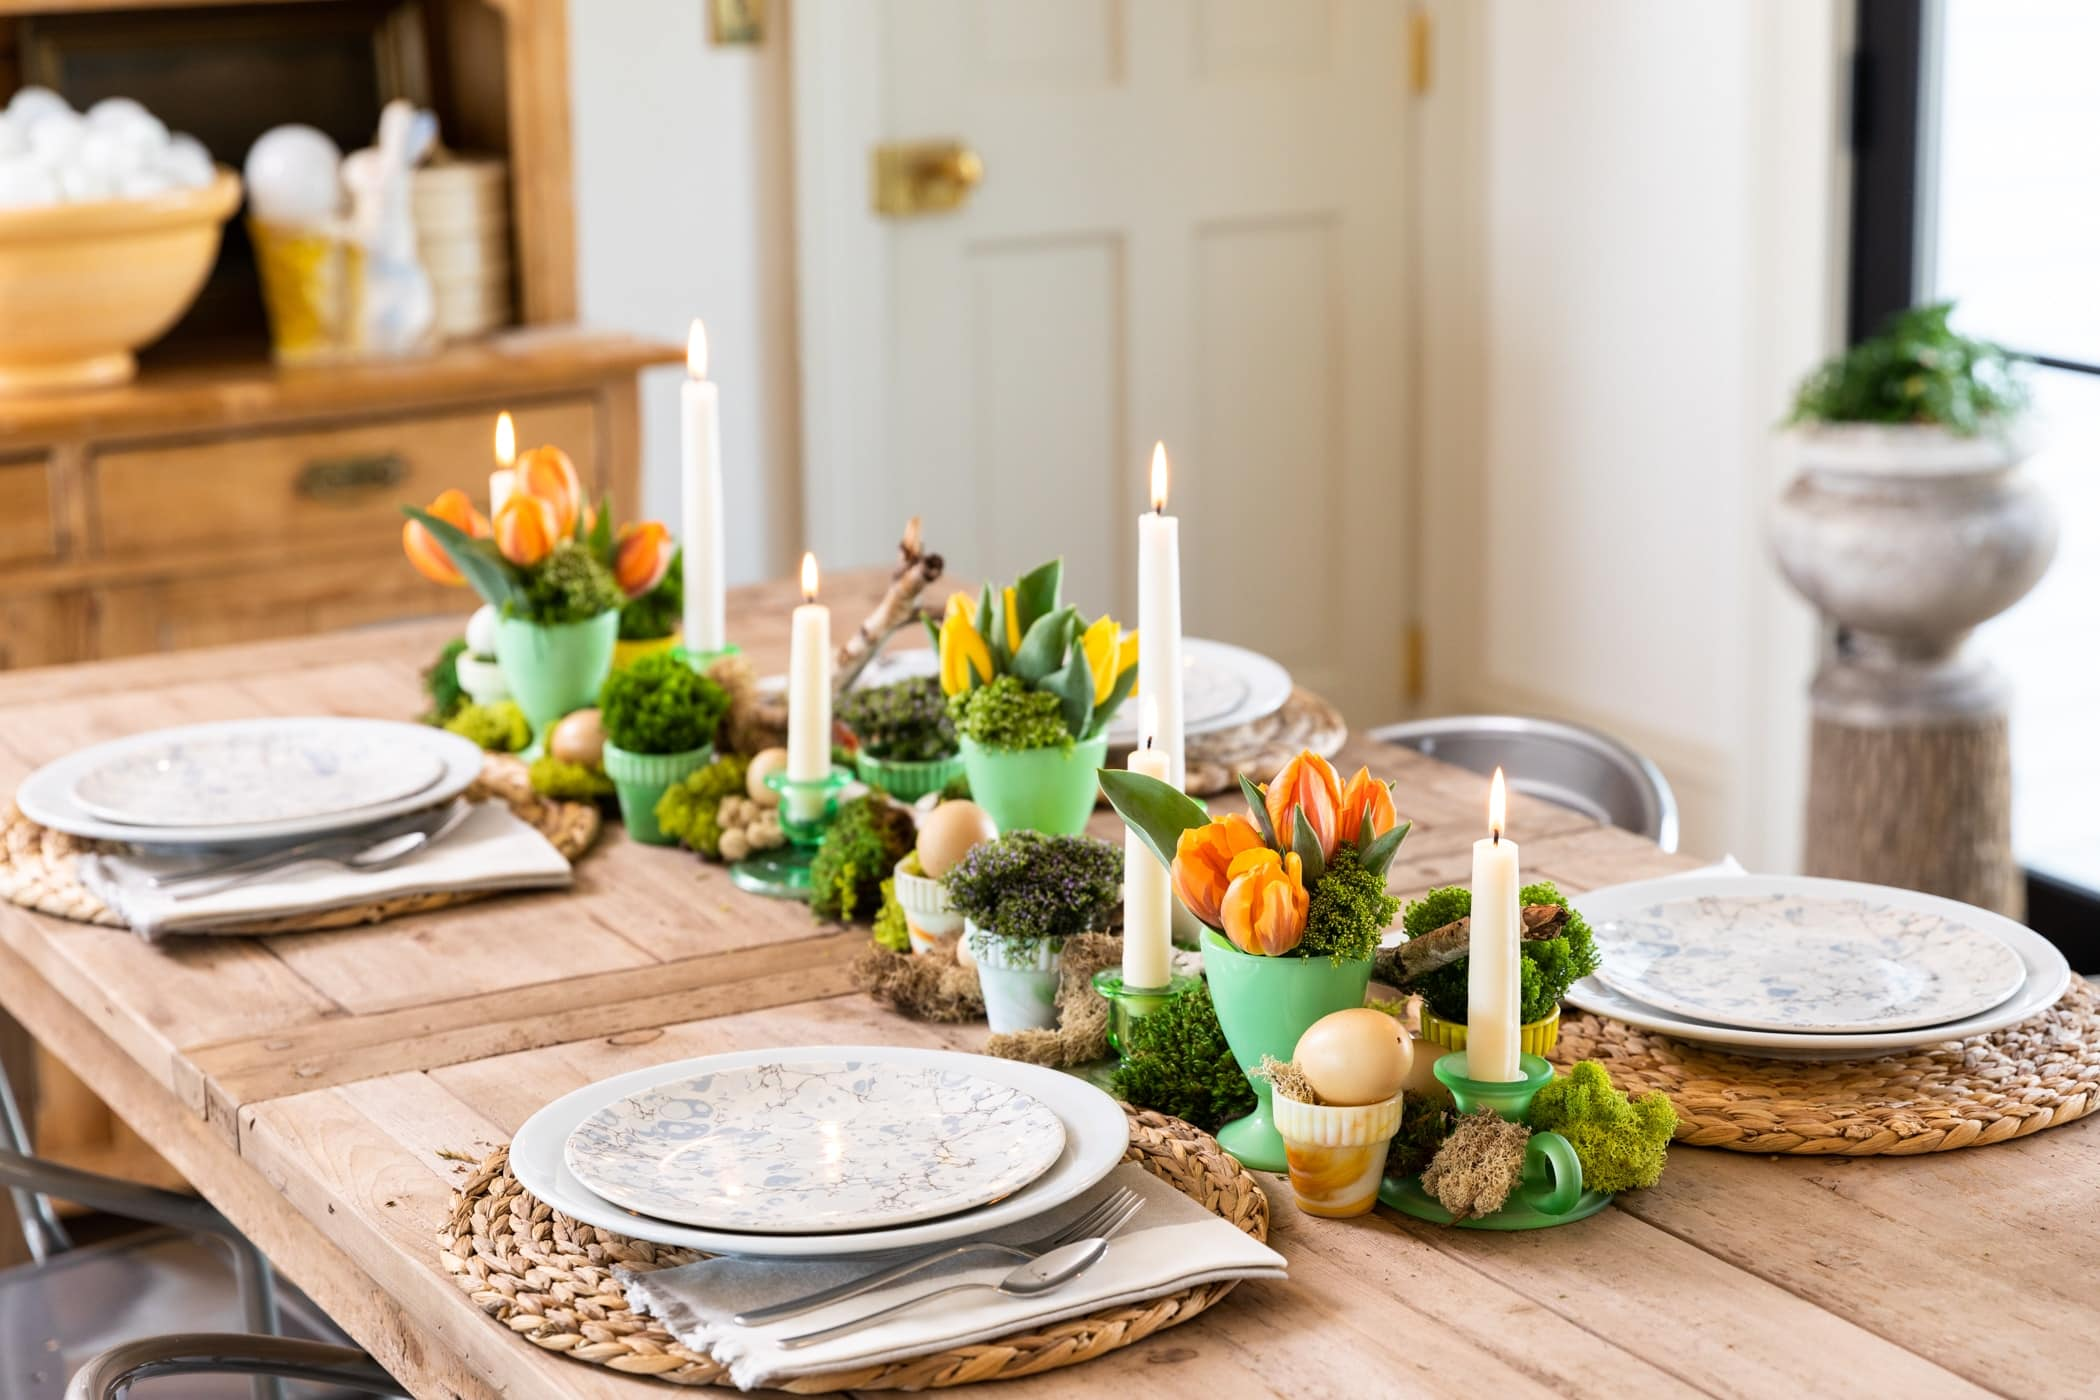 Wooden table spread spread with freshly colored tulip flowers in green vases with plates set around table